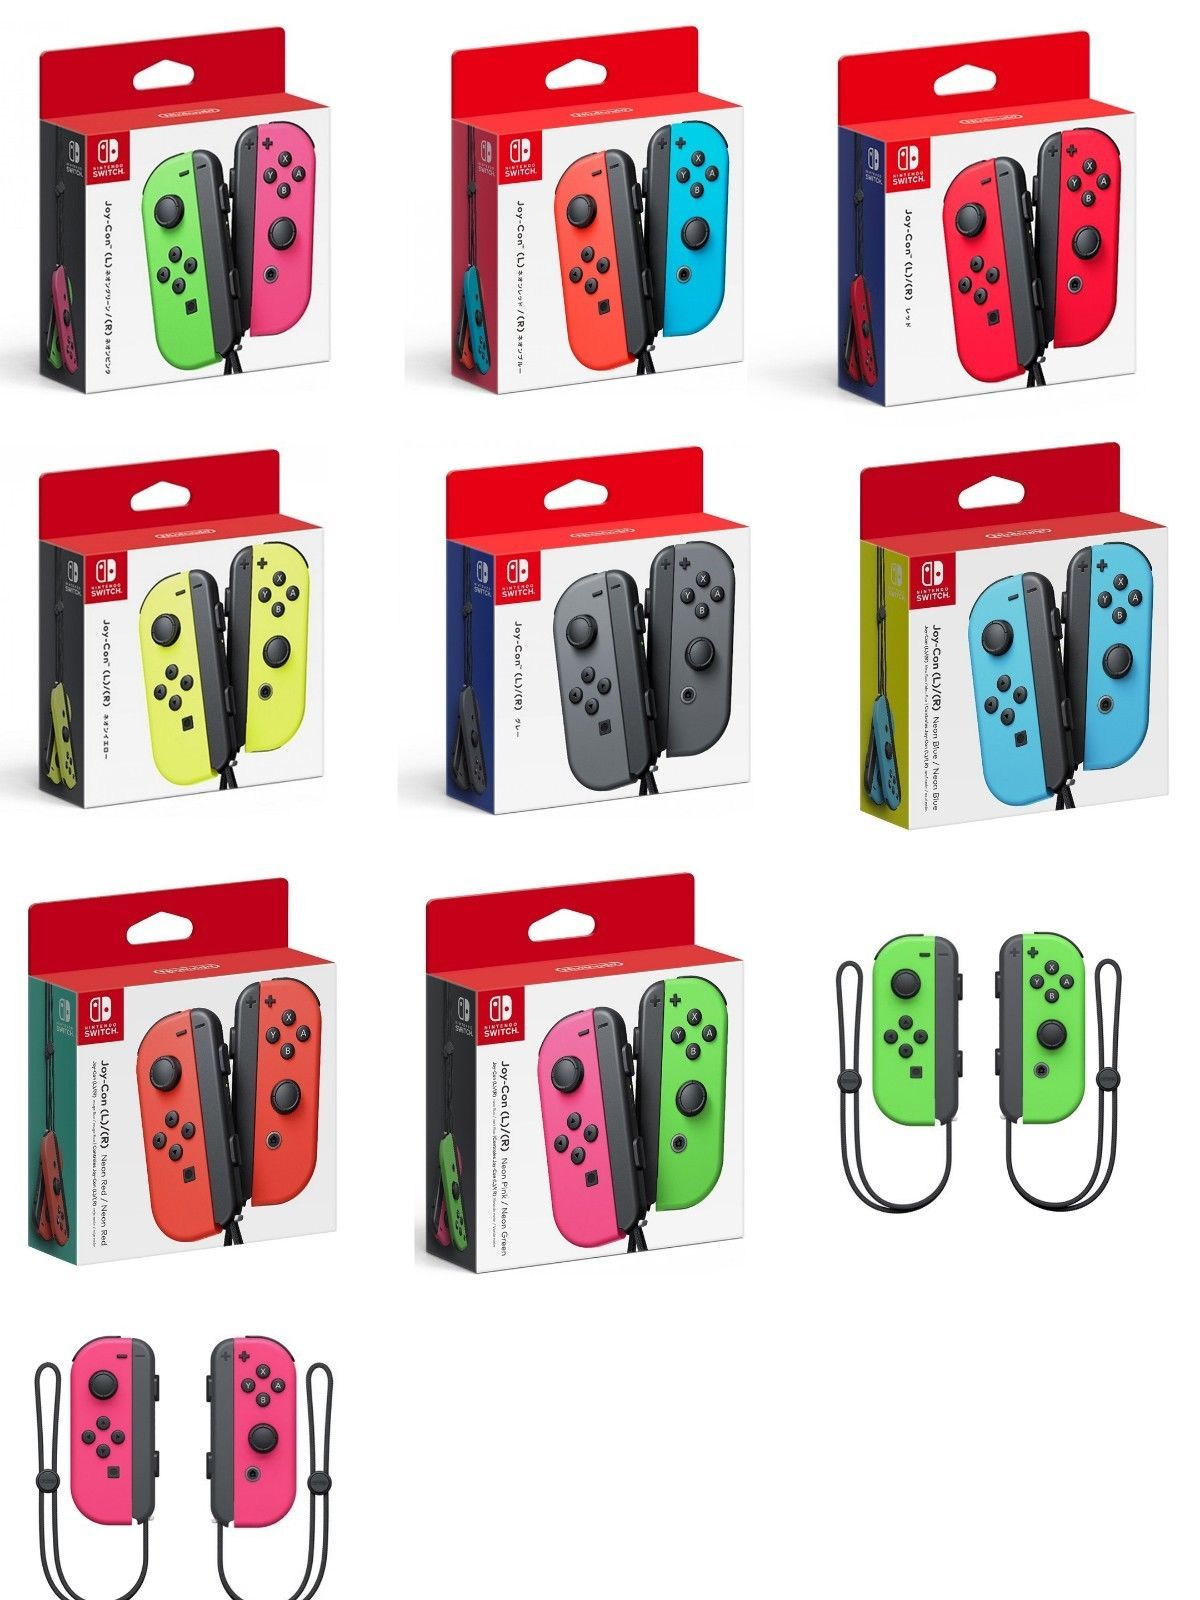 Nintendo Switch Joy Con Wireless Controller Various Colors Available Ebay Nintendo Switch Accessories Nintendo Switch Nintendo Switch Games